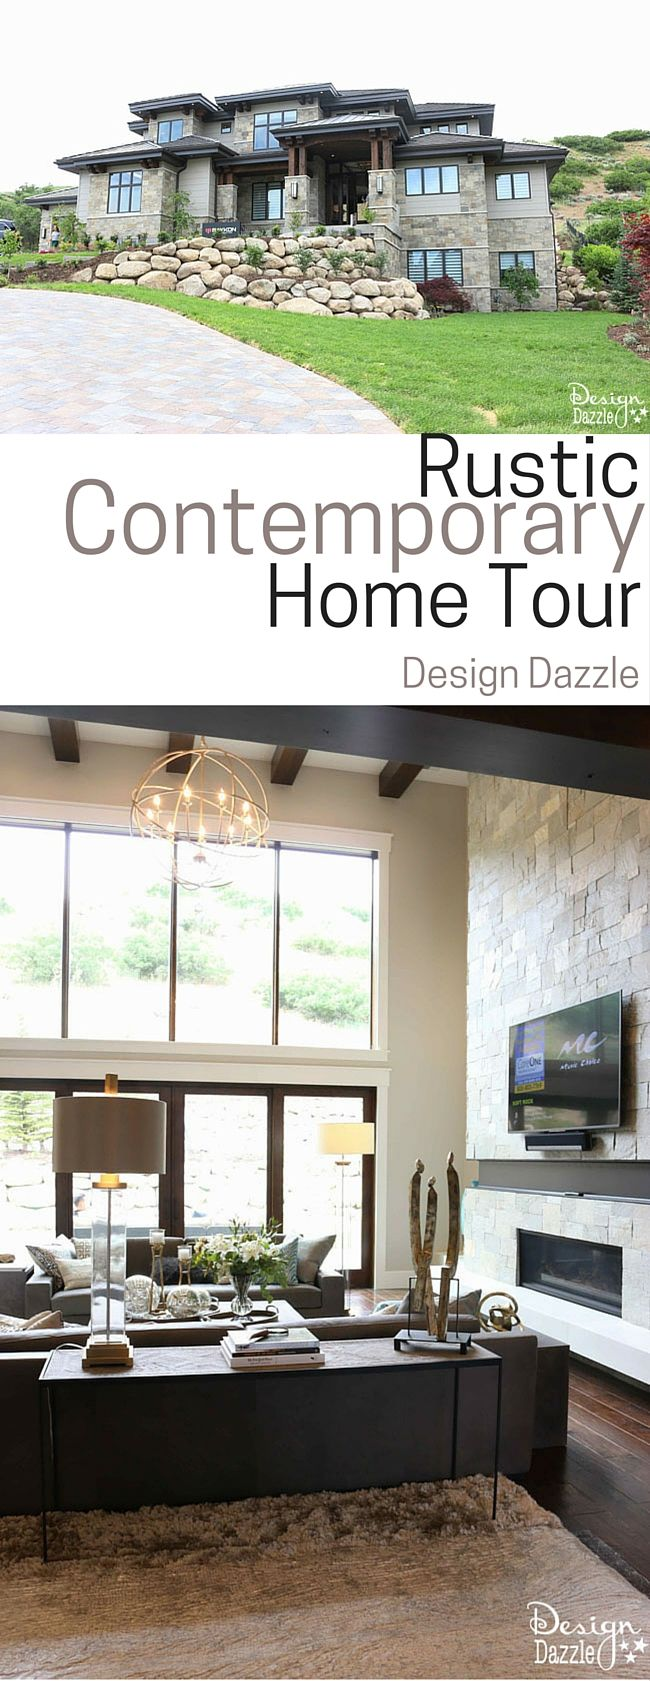 Best 25+ Contemporary homes ideas on Pinterest | Contemporary home  exteriors, Modern contemporary homes and Contemporary houses